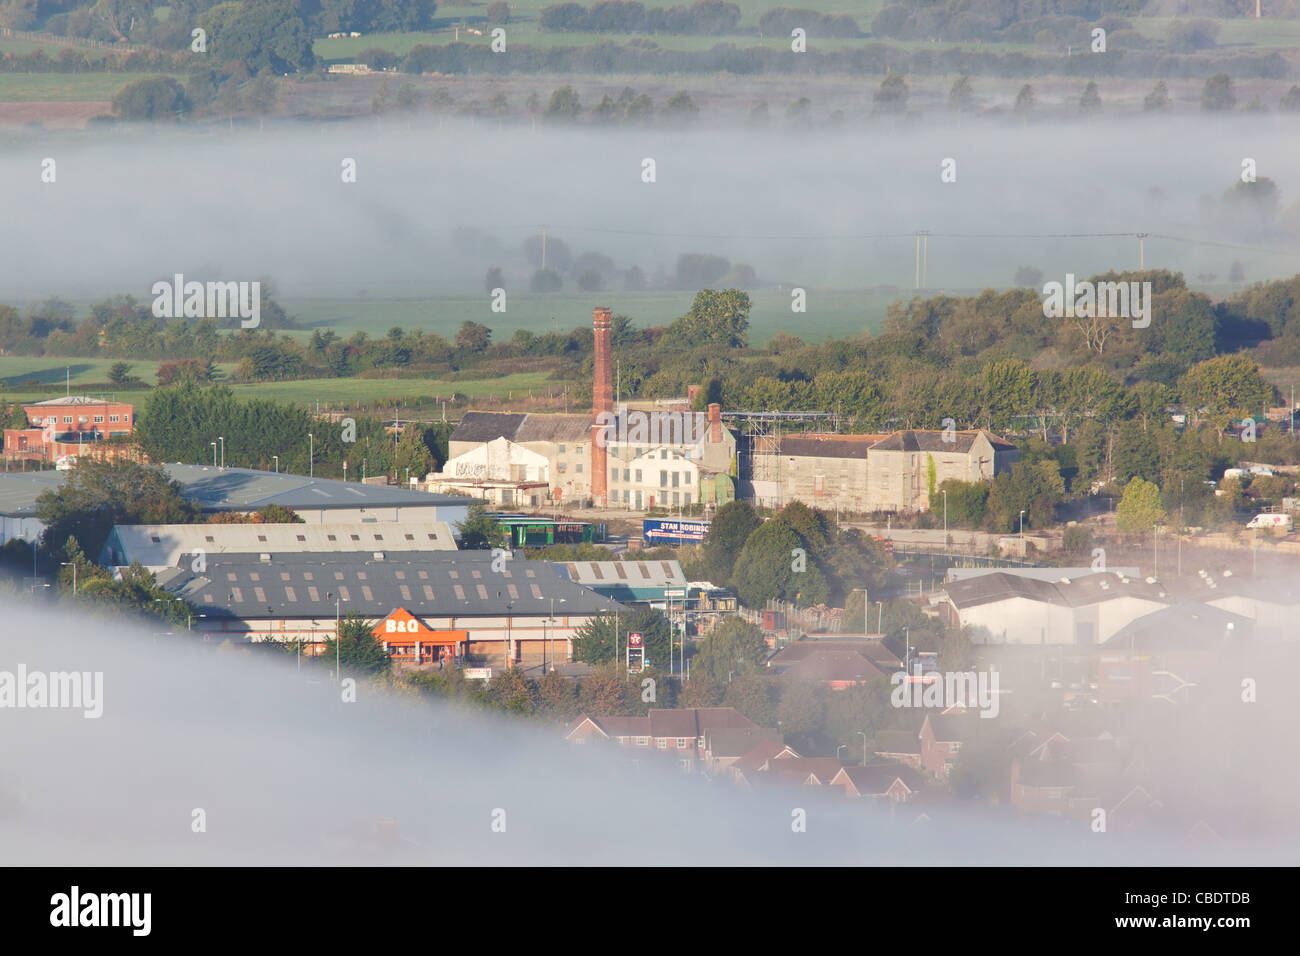 View of old factories near Glastonbury town surrounded by mist early morning from the summit of the Tor - Stock Image